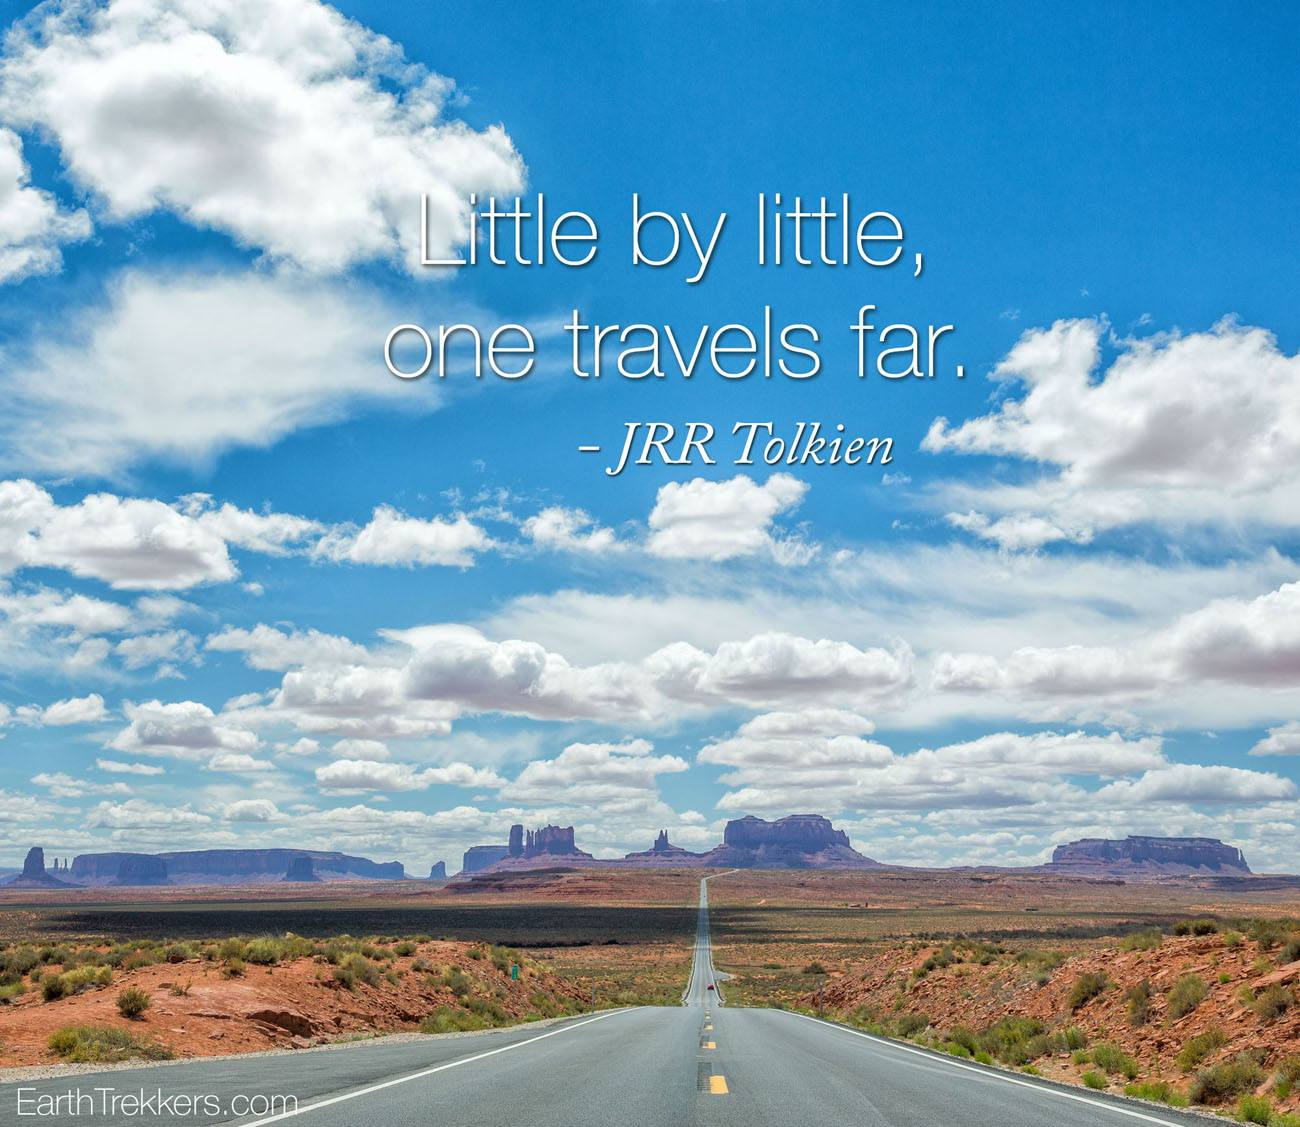 Little by little one travels far